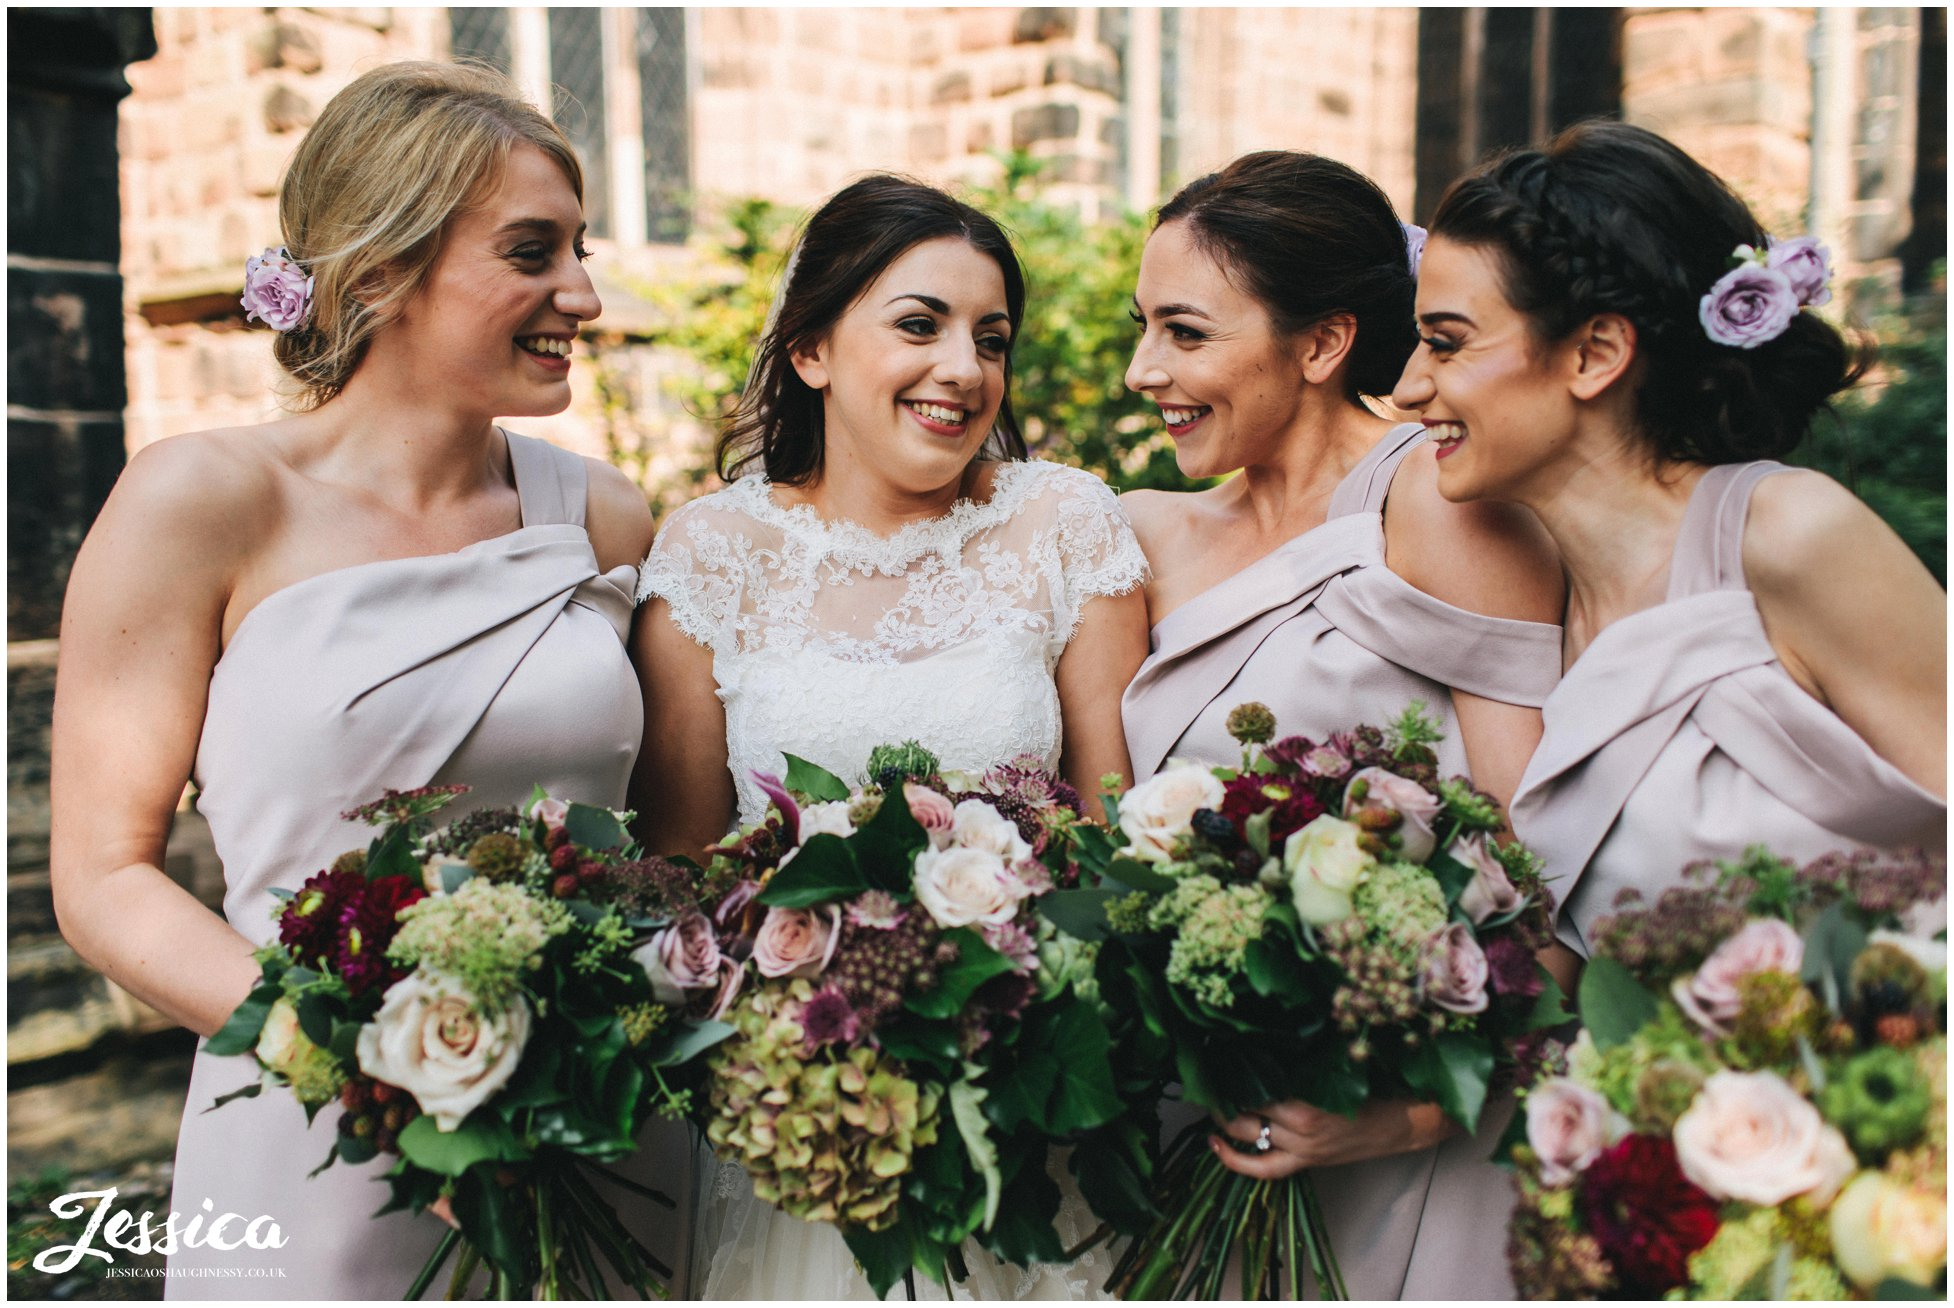 bride and bridesmaids laugh together before the ceremony